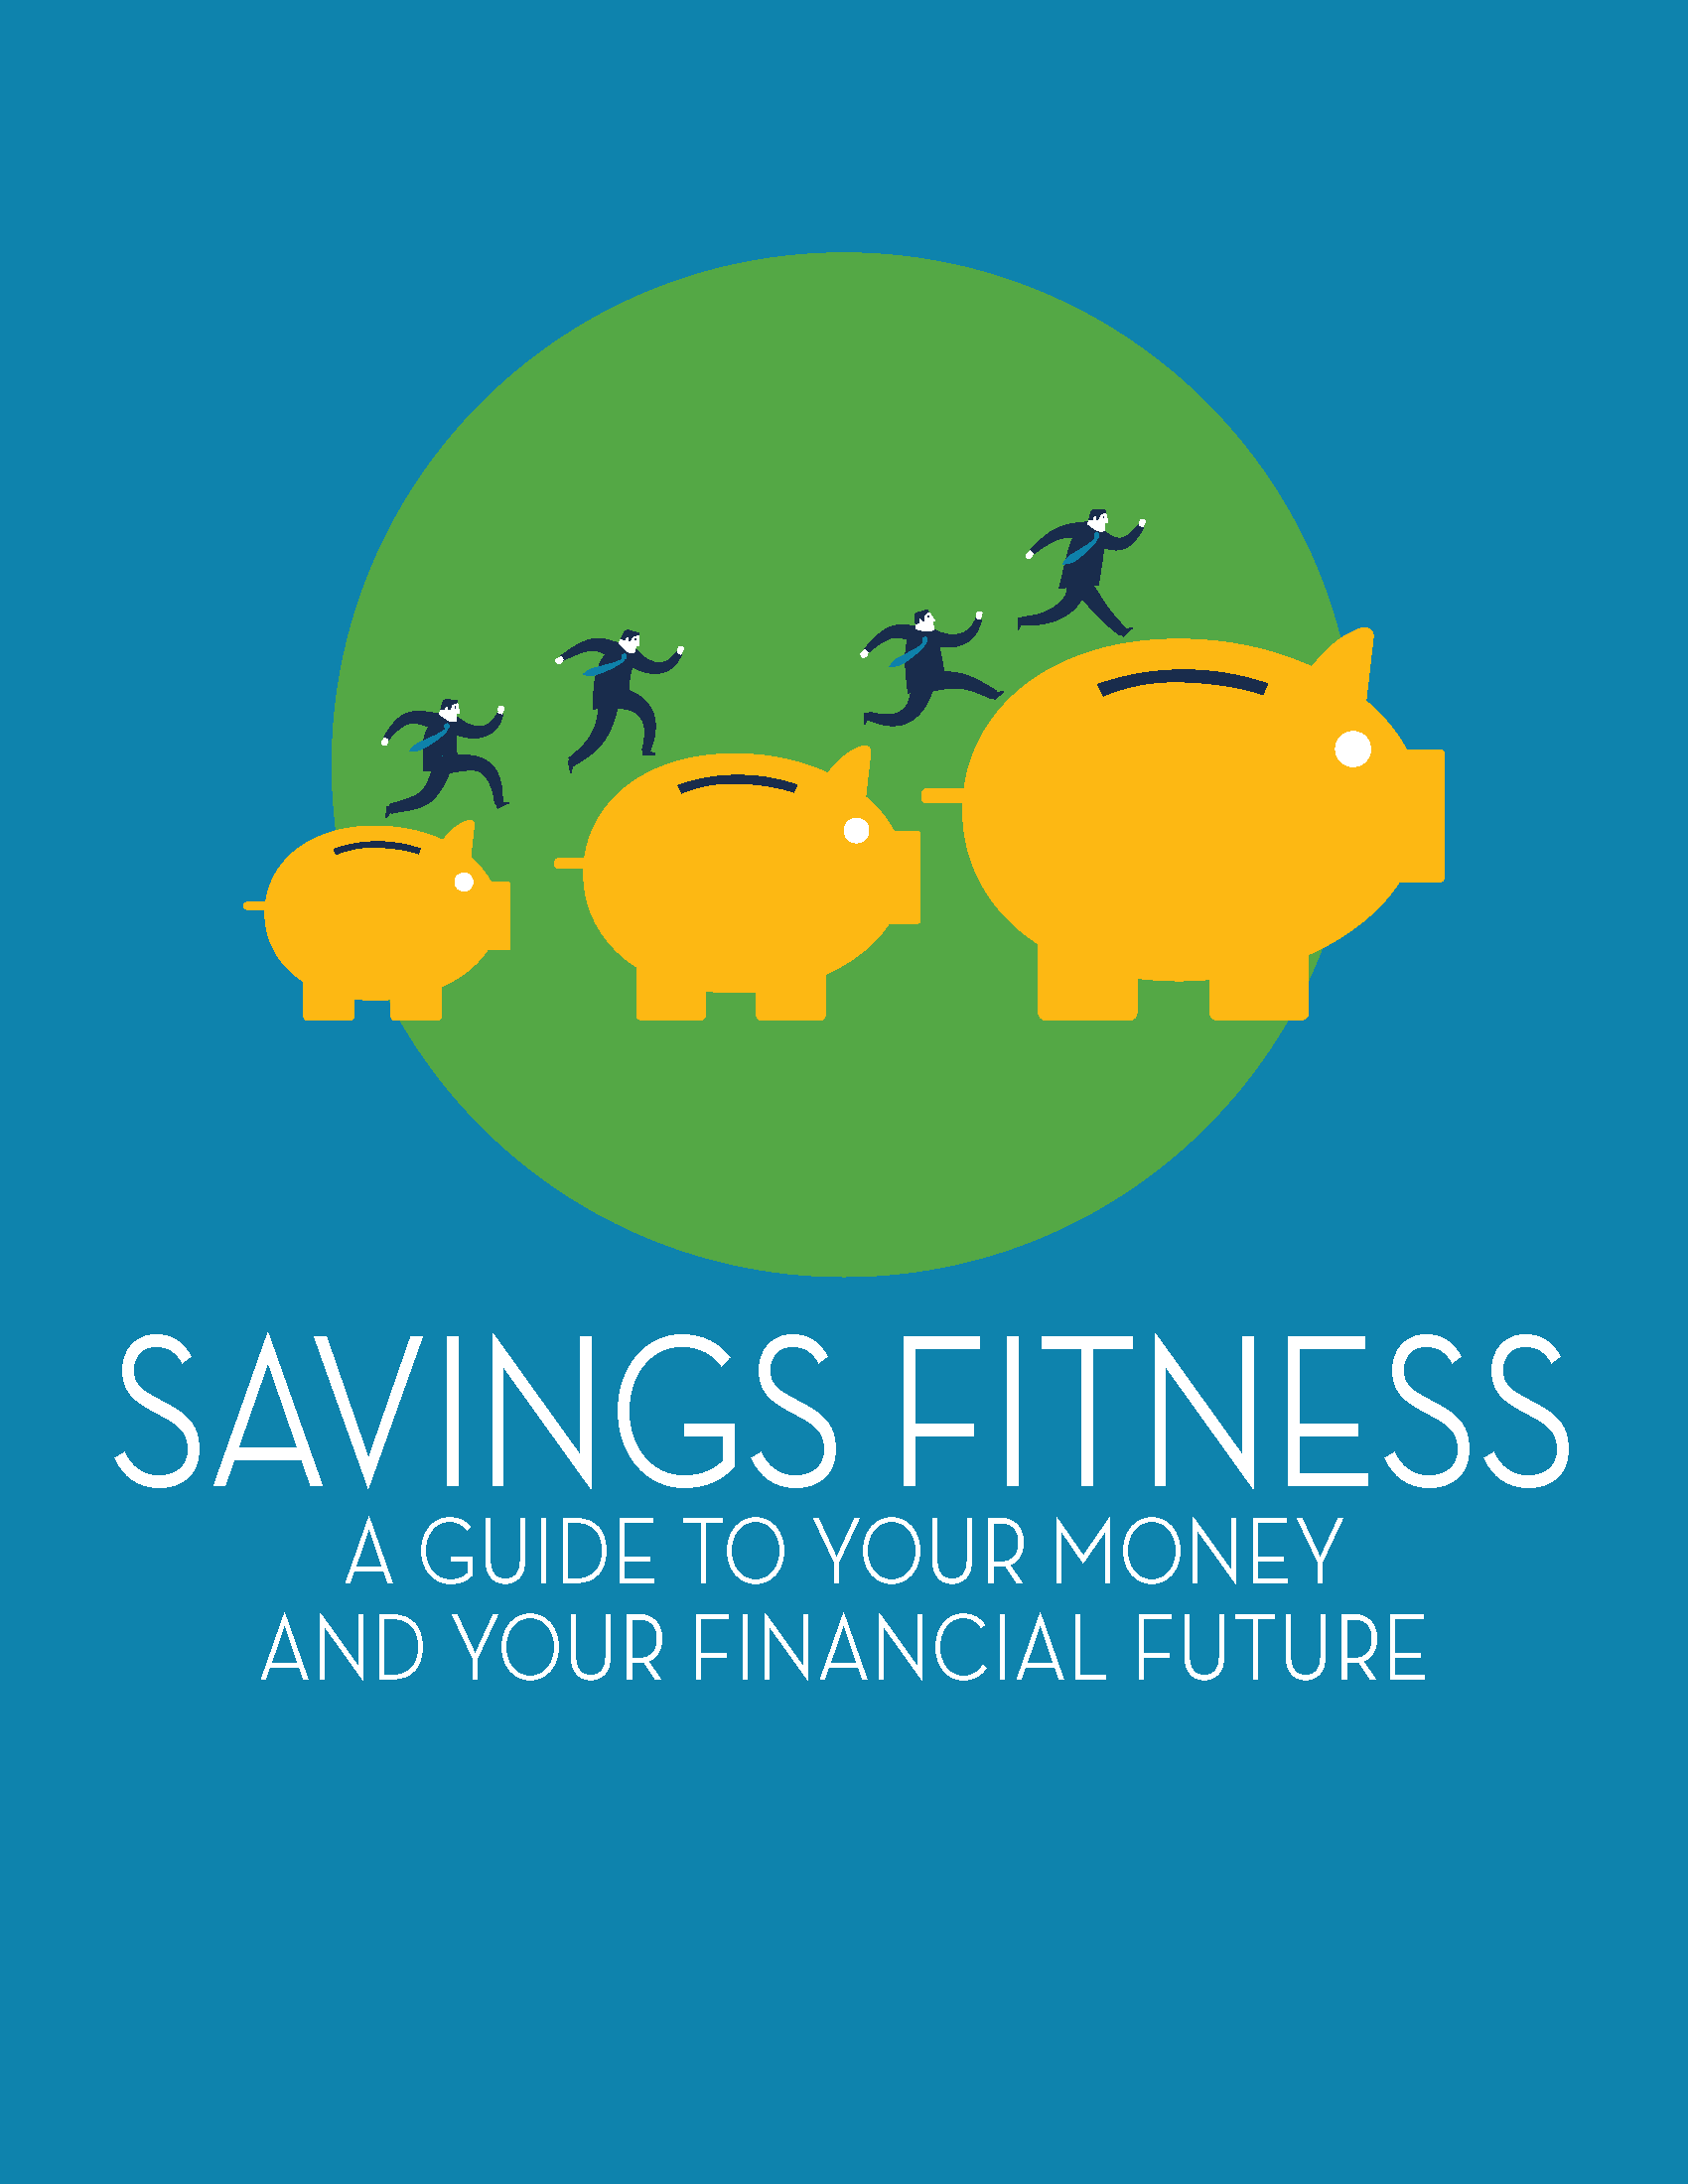 Description: Savings Fitness: A Guide to Your Money and Your Financial Future